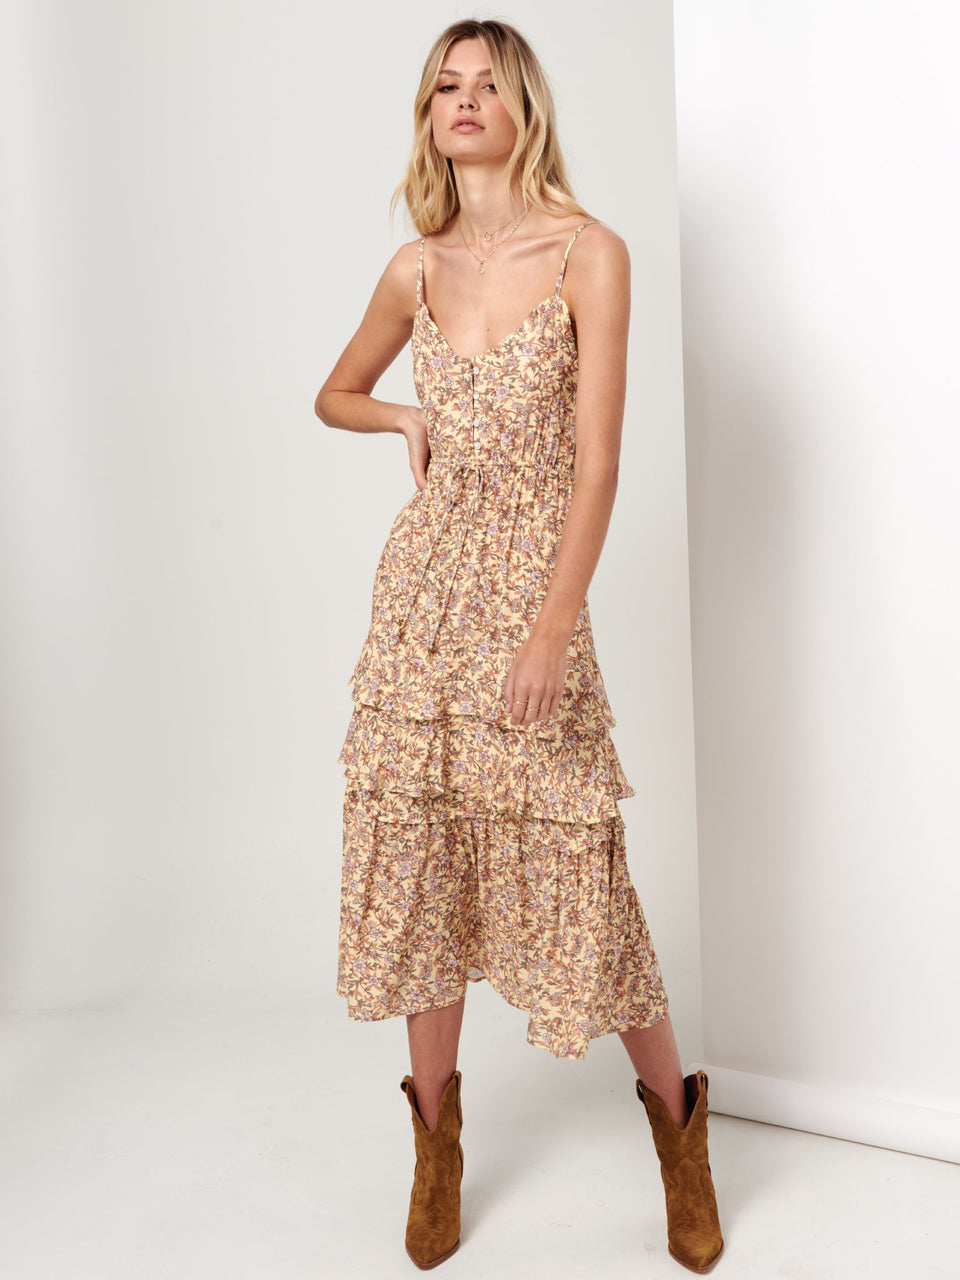 Kivari Isabella Strappy Maxi Dress - Yellow & Pink Floral